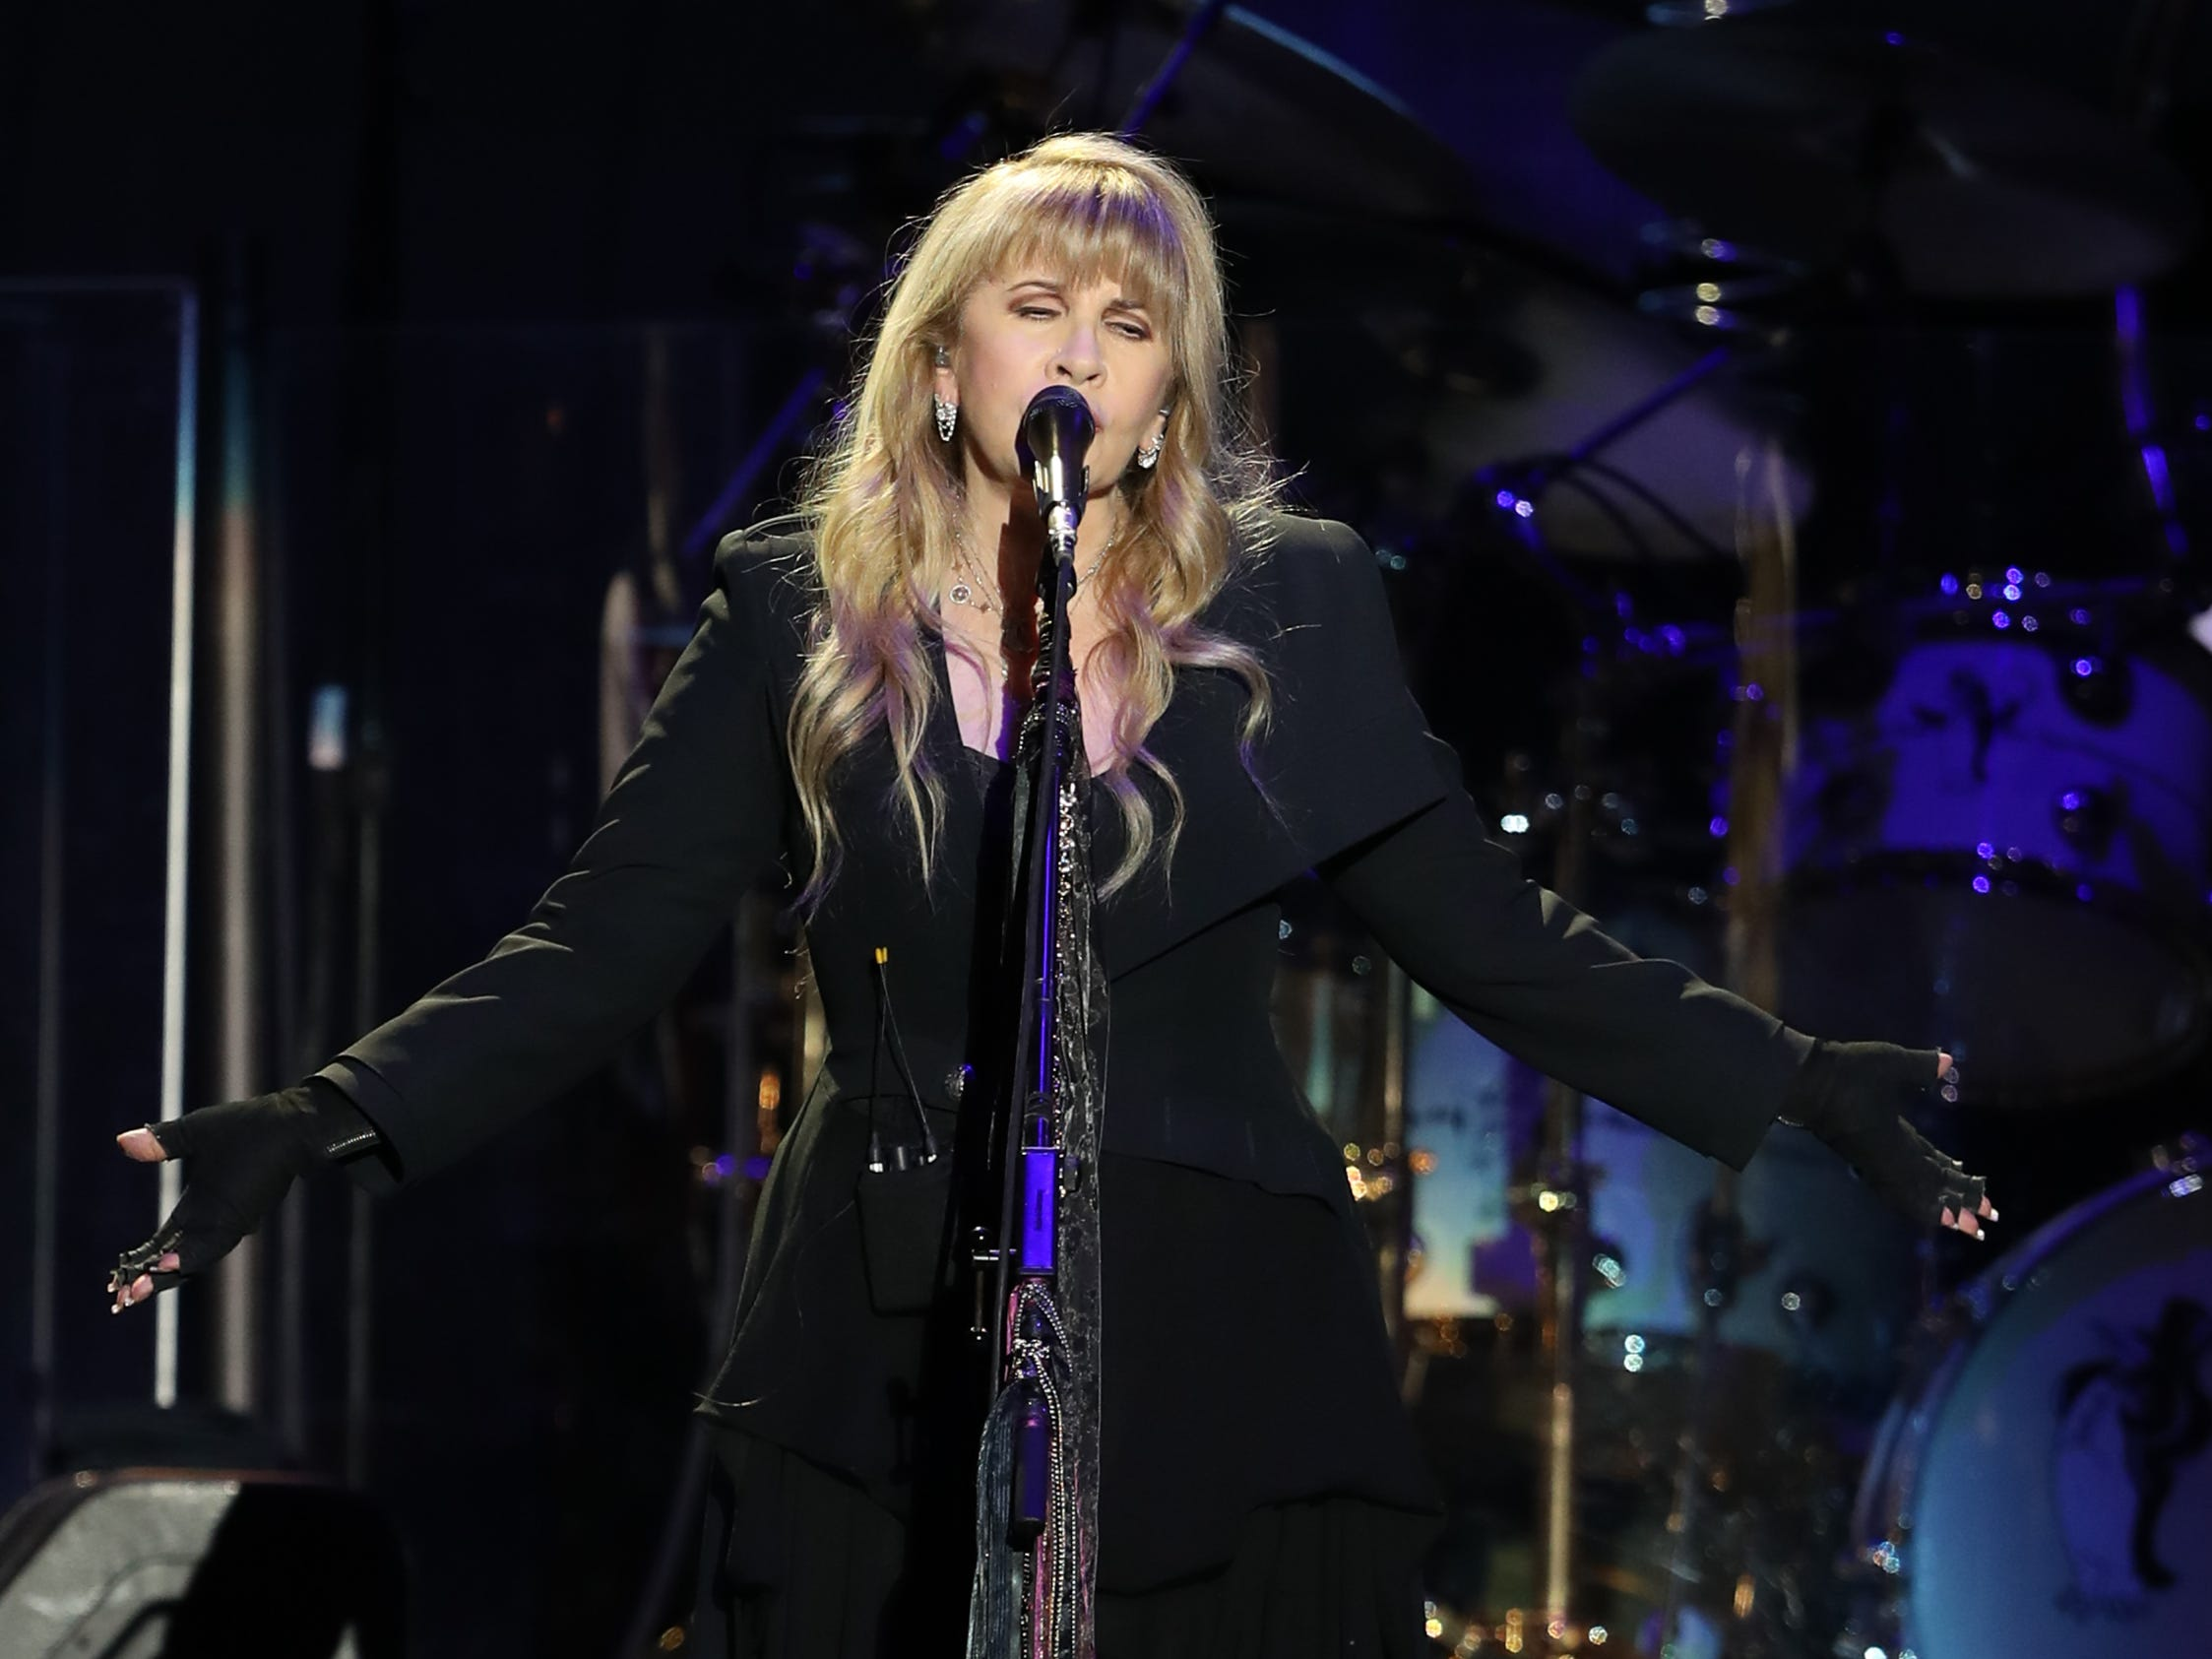 Stevie Nicks of Fleetwood Mac performs at Wells Fargo Arena in Des Moines, Iowa on Oct. 14, 2018.